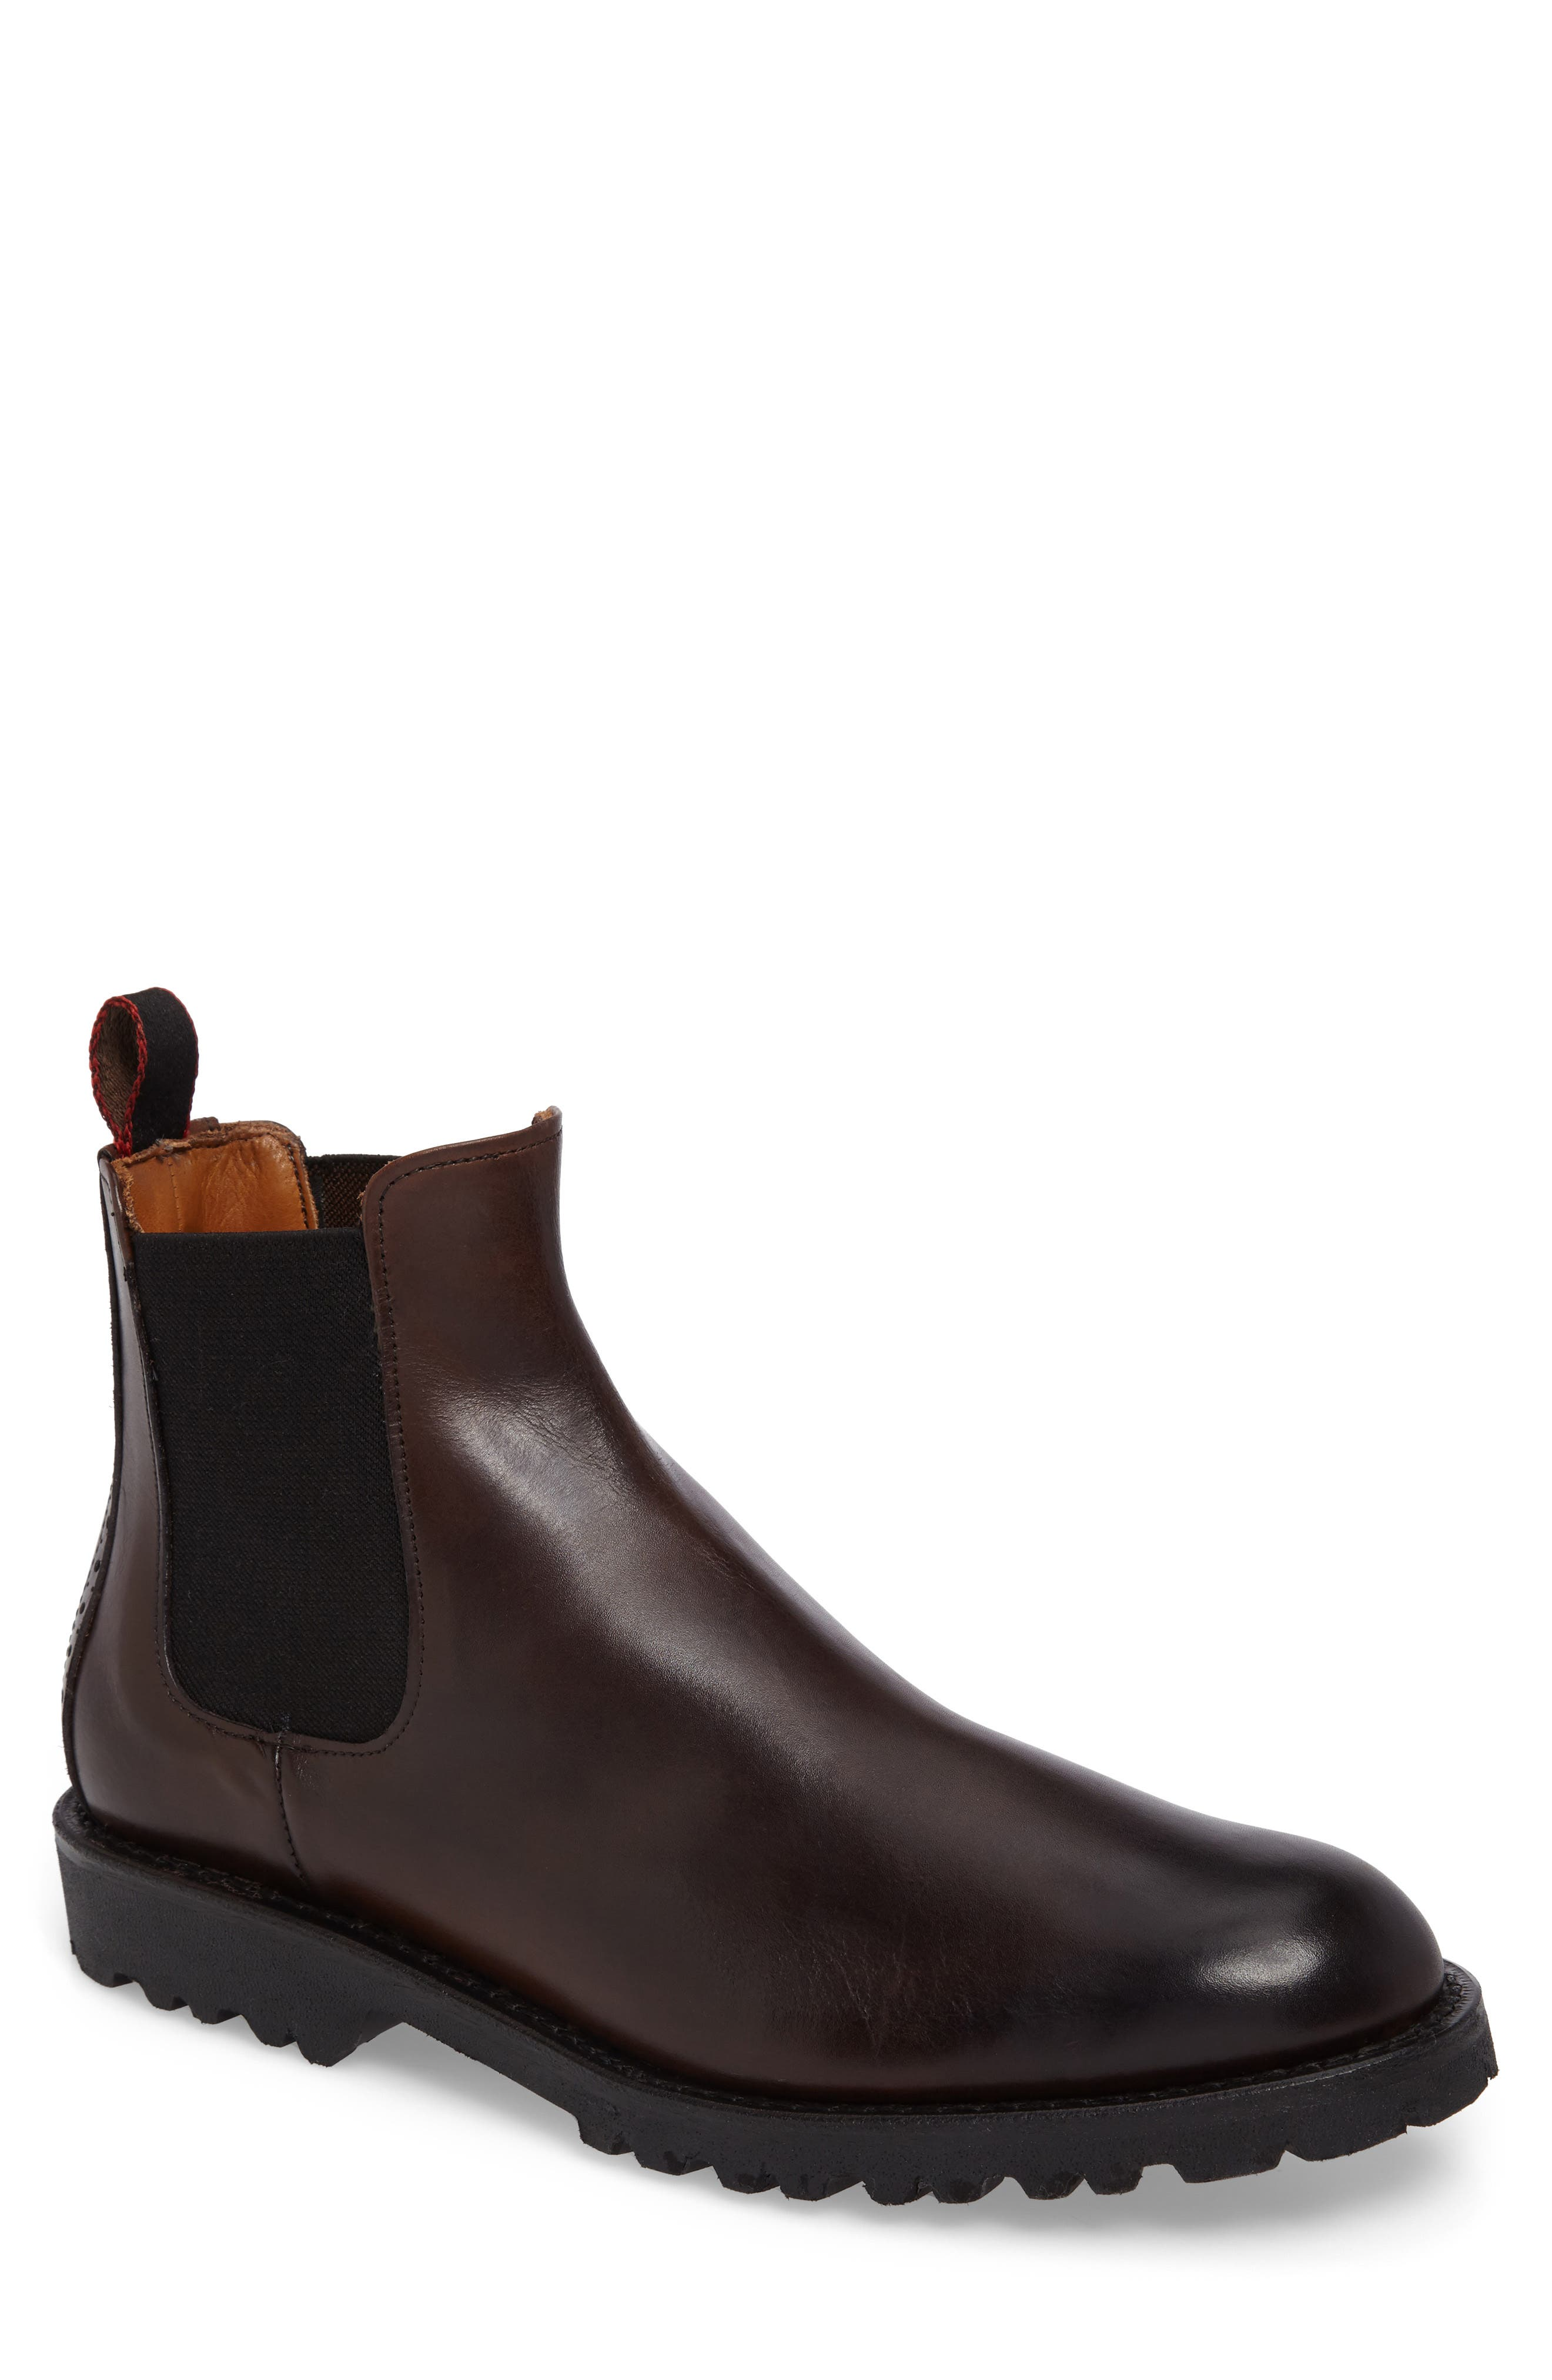 Tate Chelsea Boot,                             Main thumbnail 1, color,                             Brown Leather